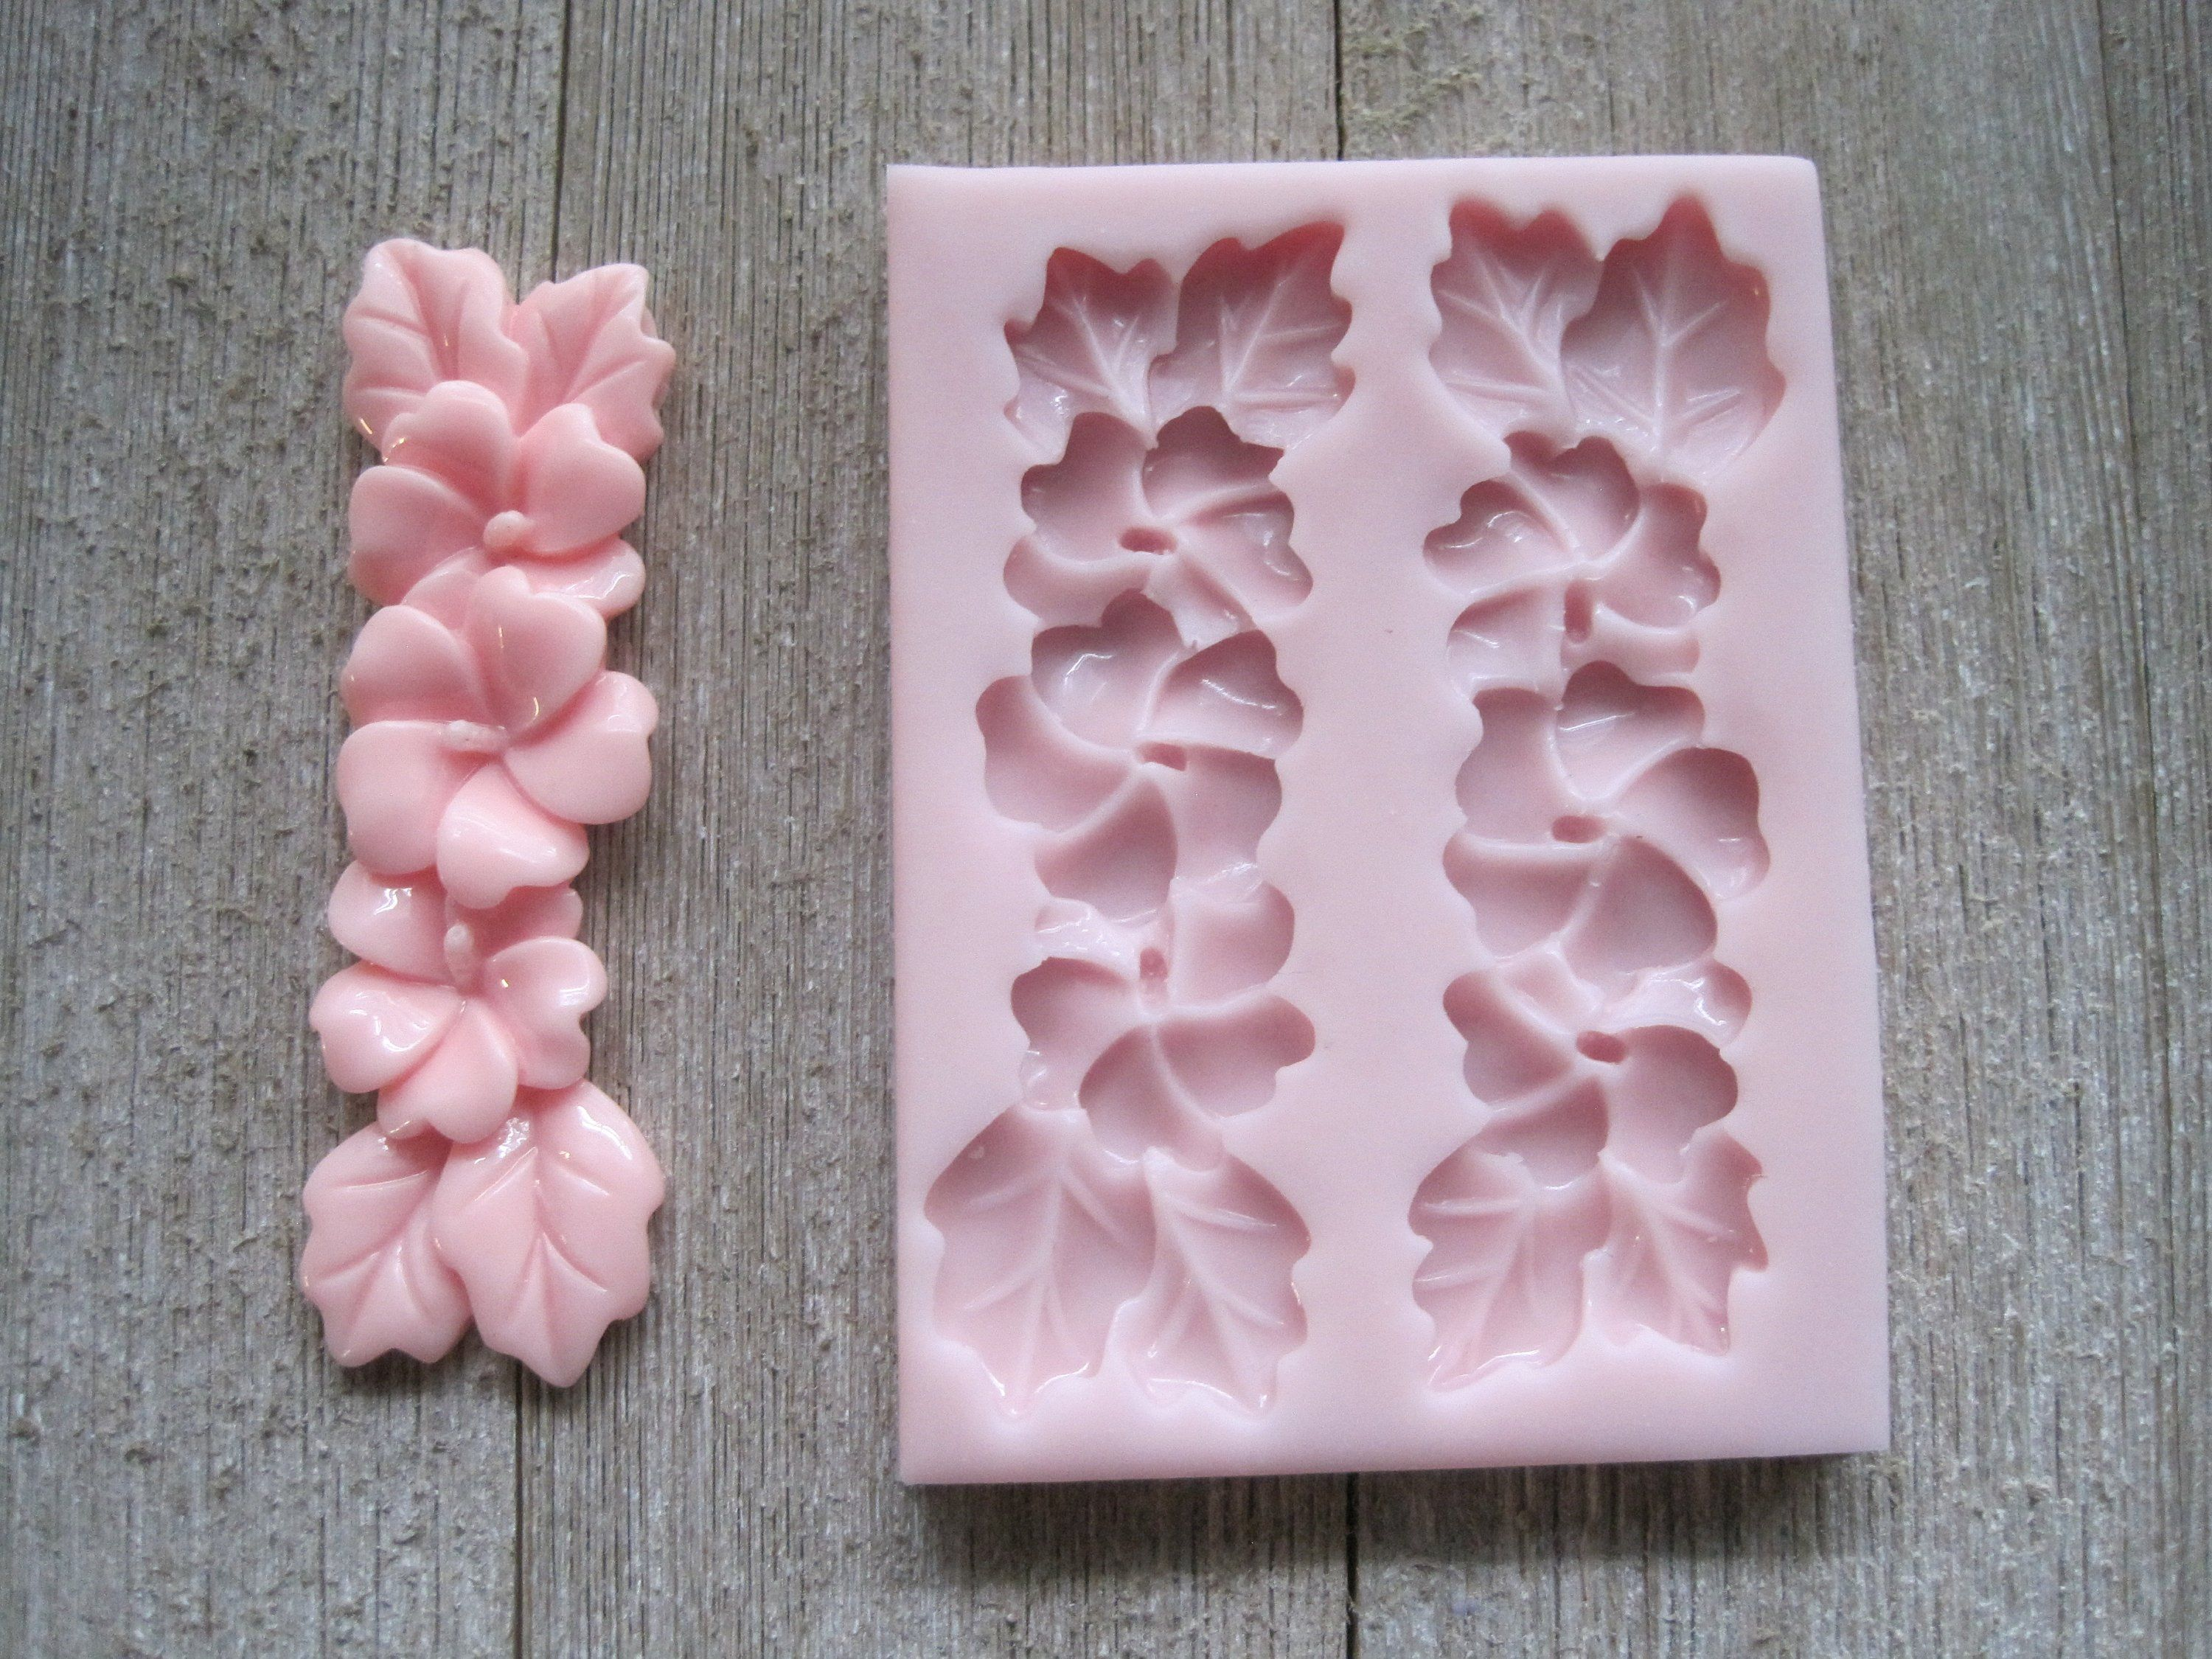 Strand Of Hibiscus Flowers And Leaves Silicone Mold Hibiscus Flower Mold Flower Mold Fondant Mold Re Flower Molding Silicone Molds Polymer Clay Flowers